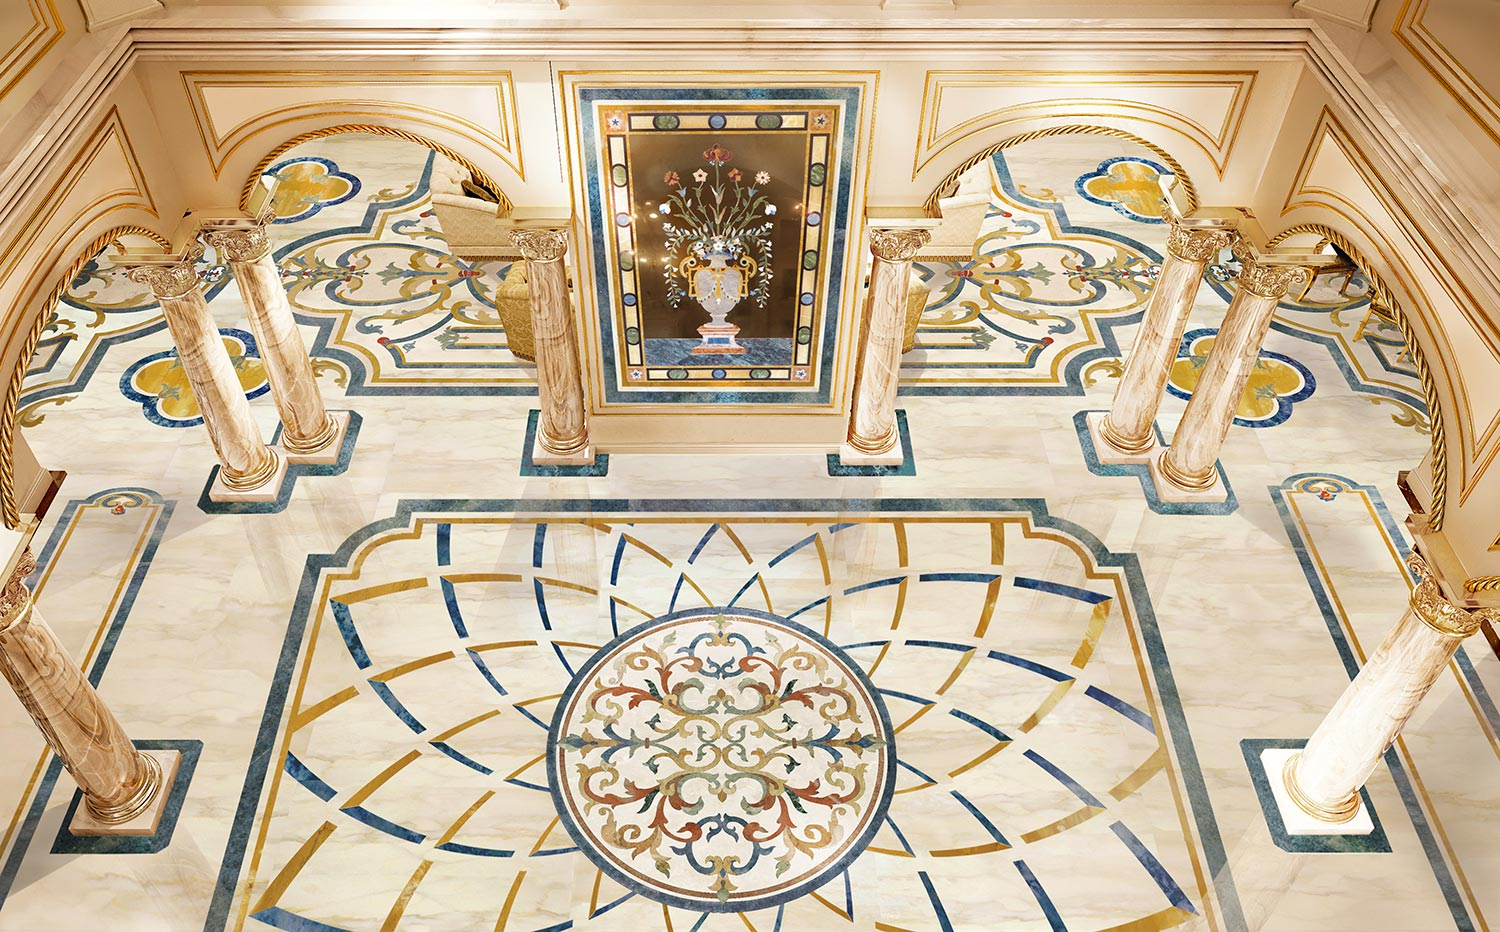 marble inlay floor design luxury residence from milan collection